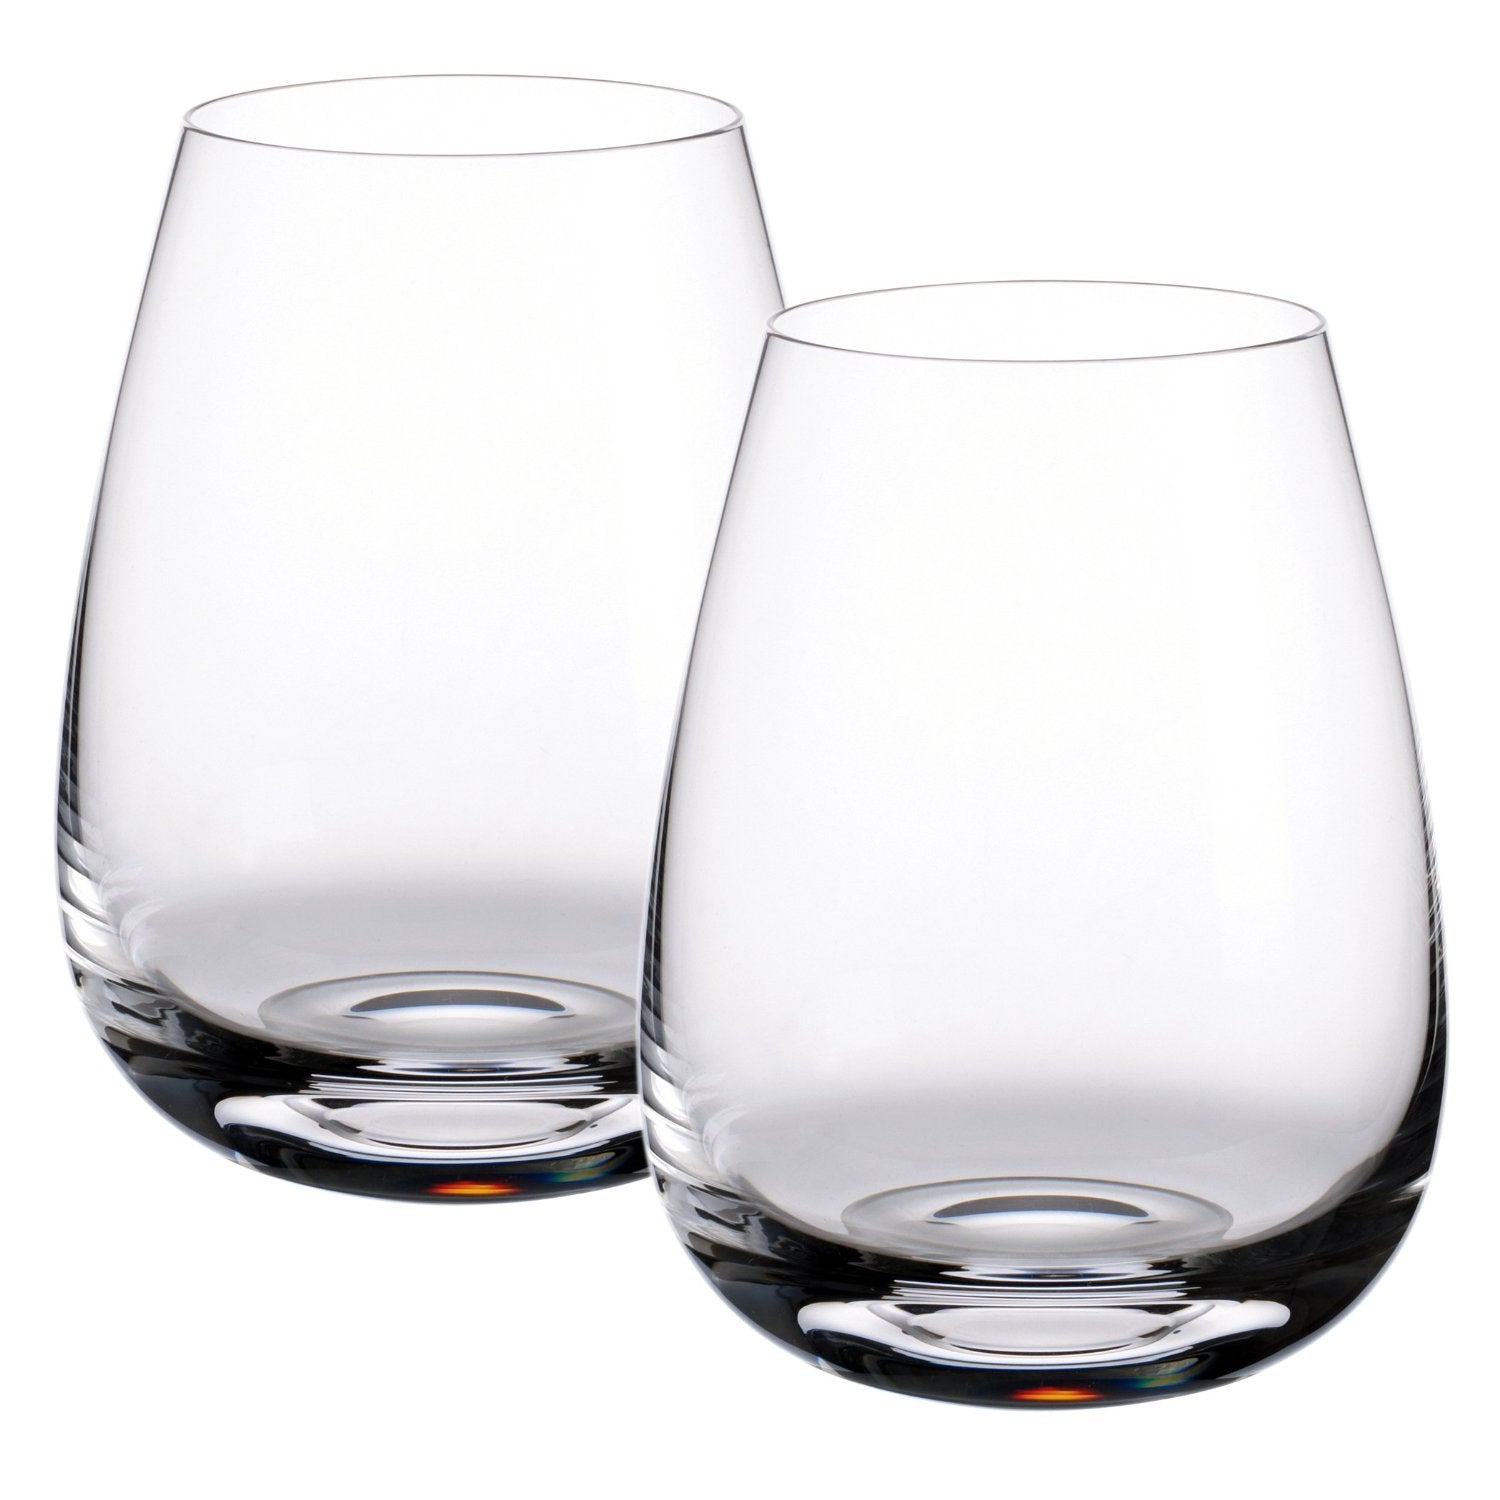 Villeroy & Boch Scotch Whiskey Single Malt 4-1/2-Inch Highlands Whisky Tumbler, Set of 2